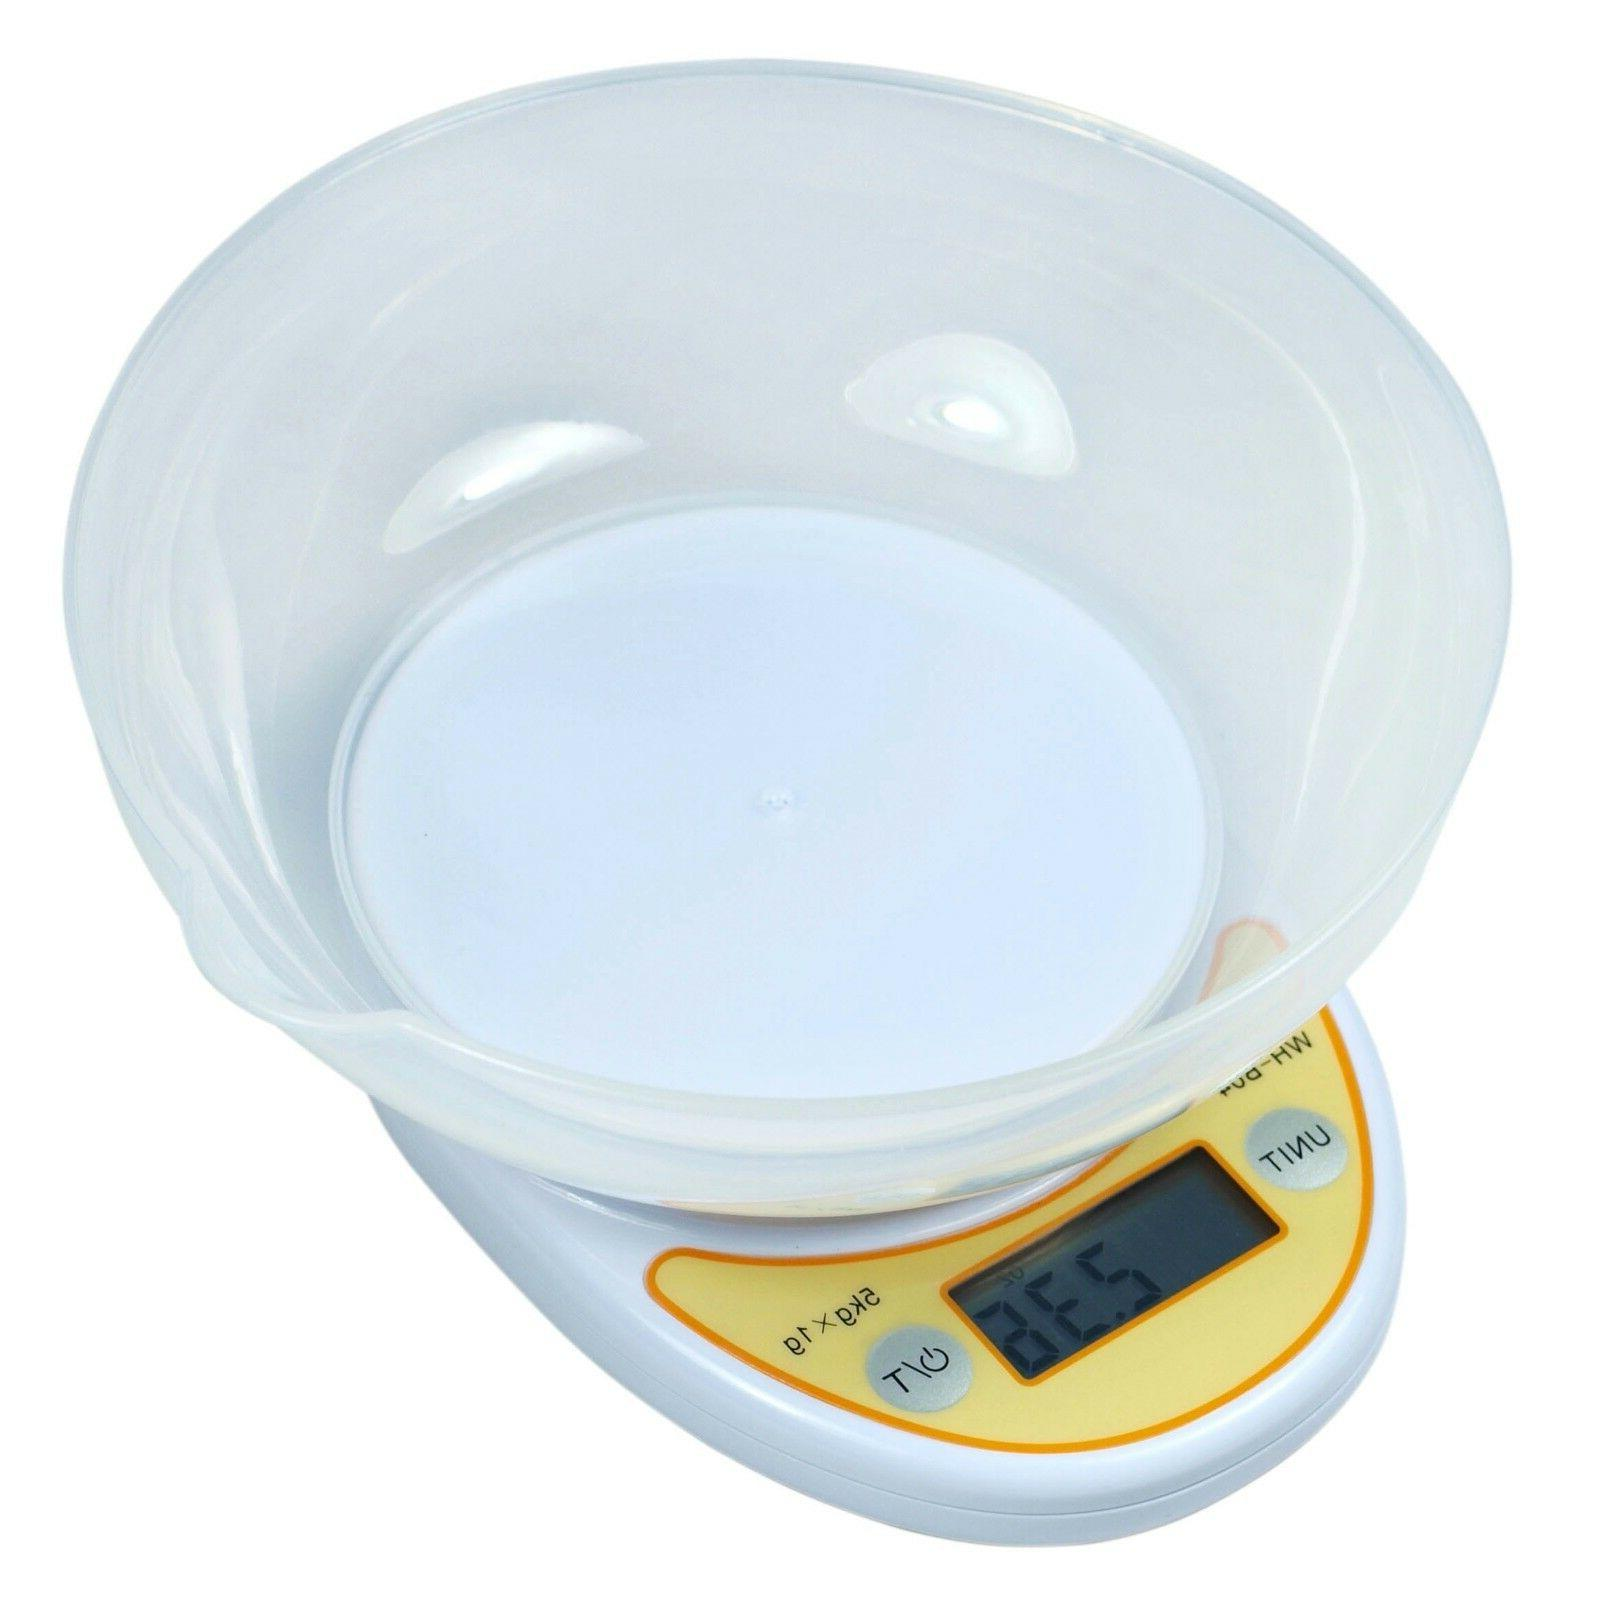 clearance compact 11lbs kitchen diet